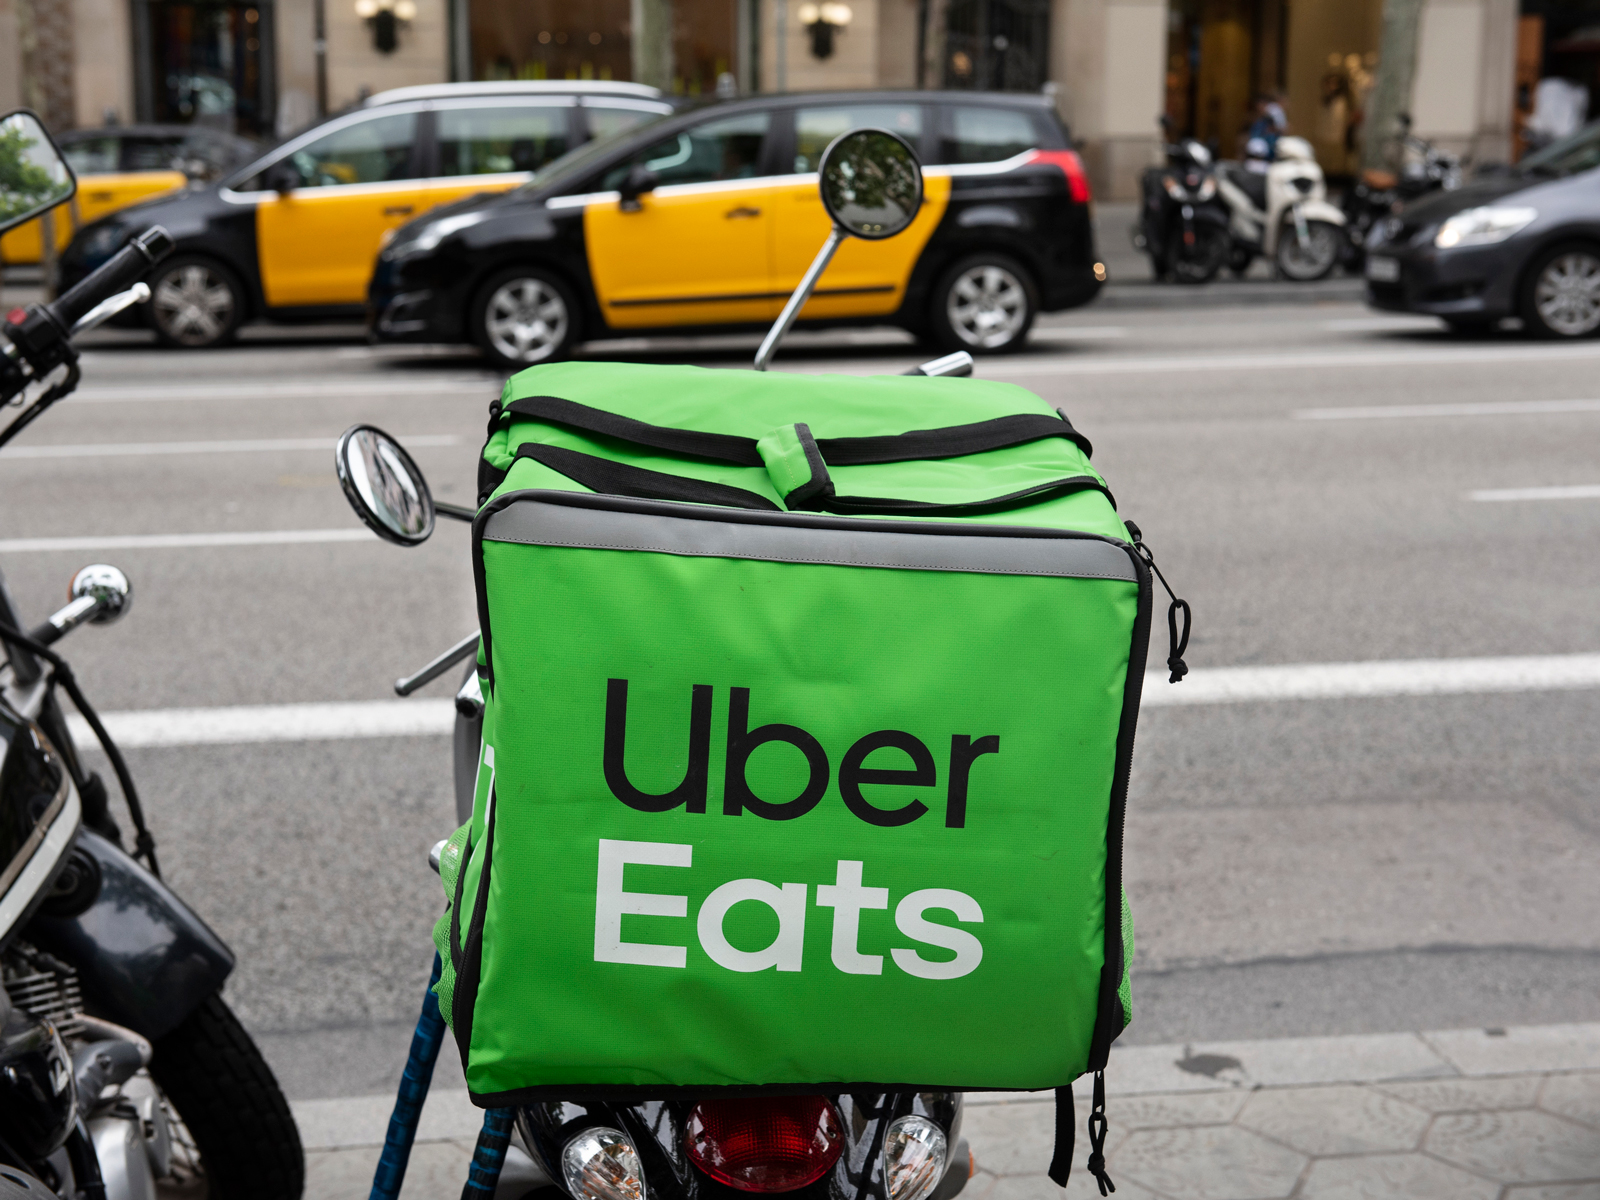 Setting Up a Fake Restaurant on Uber Eats Is Disconcertingly Easy, According to the BBC